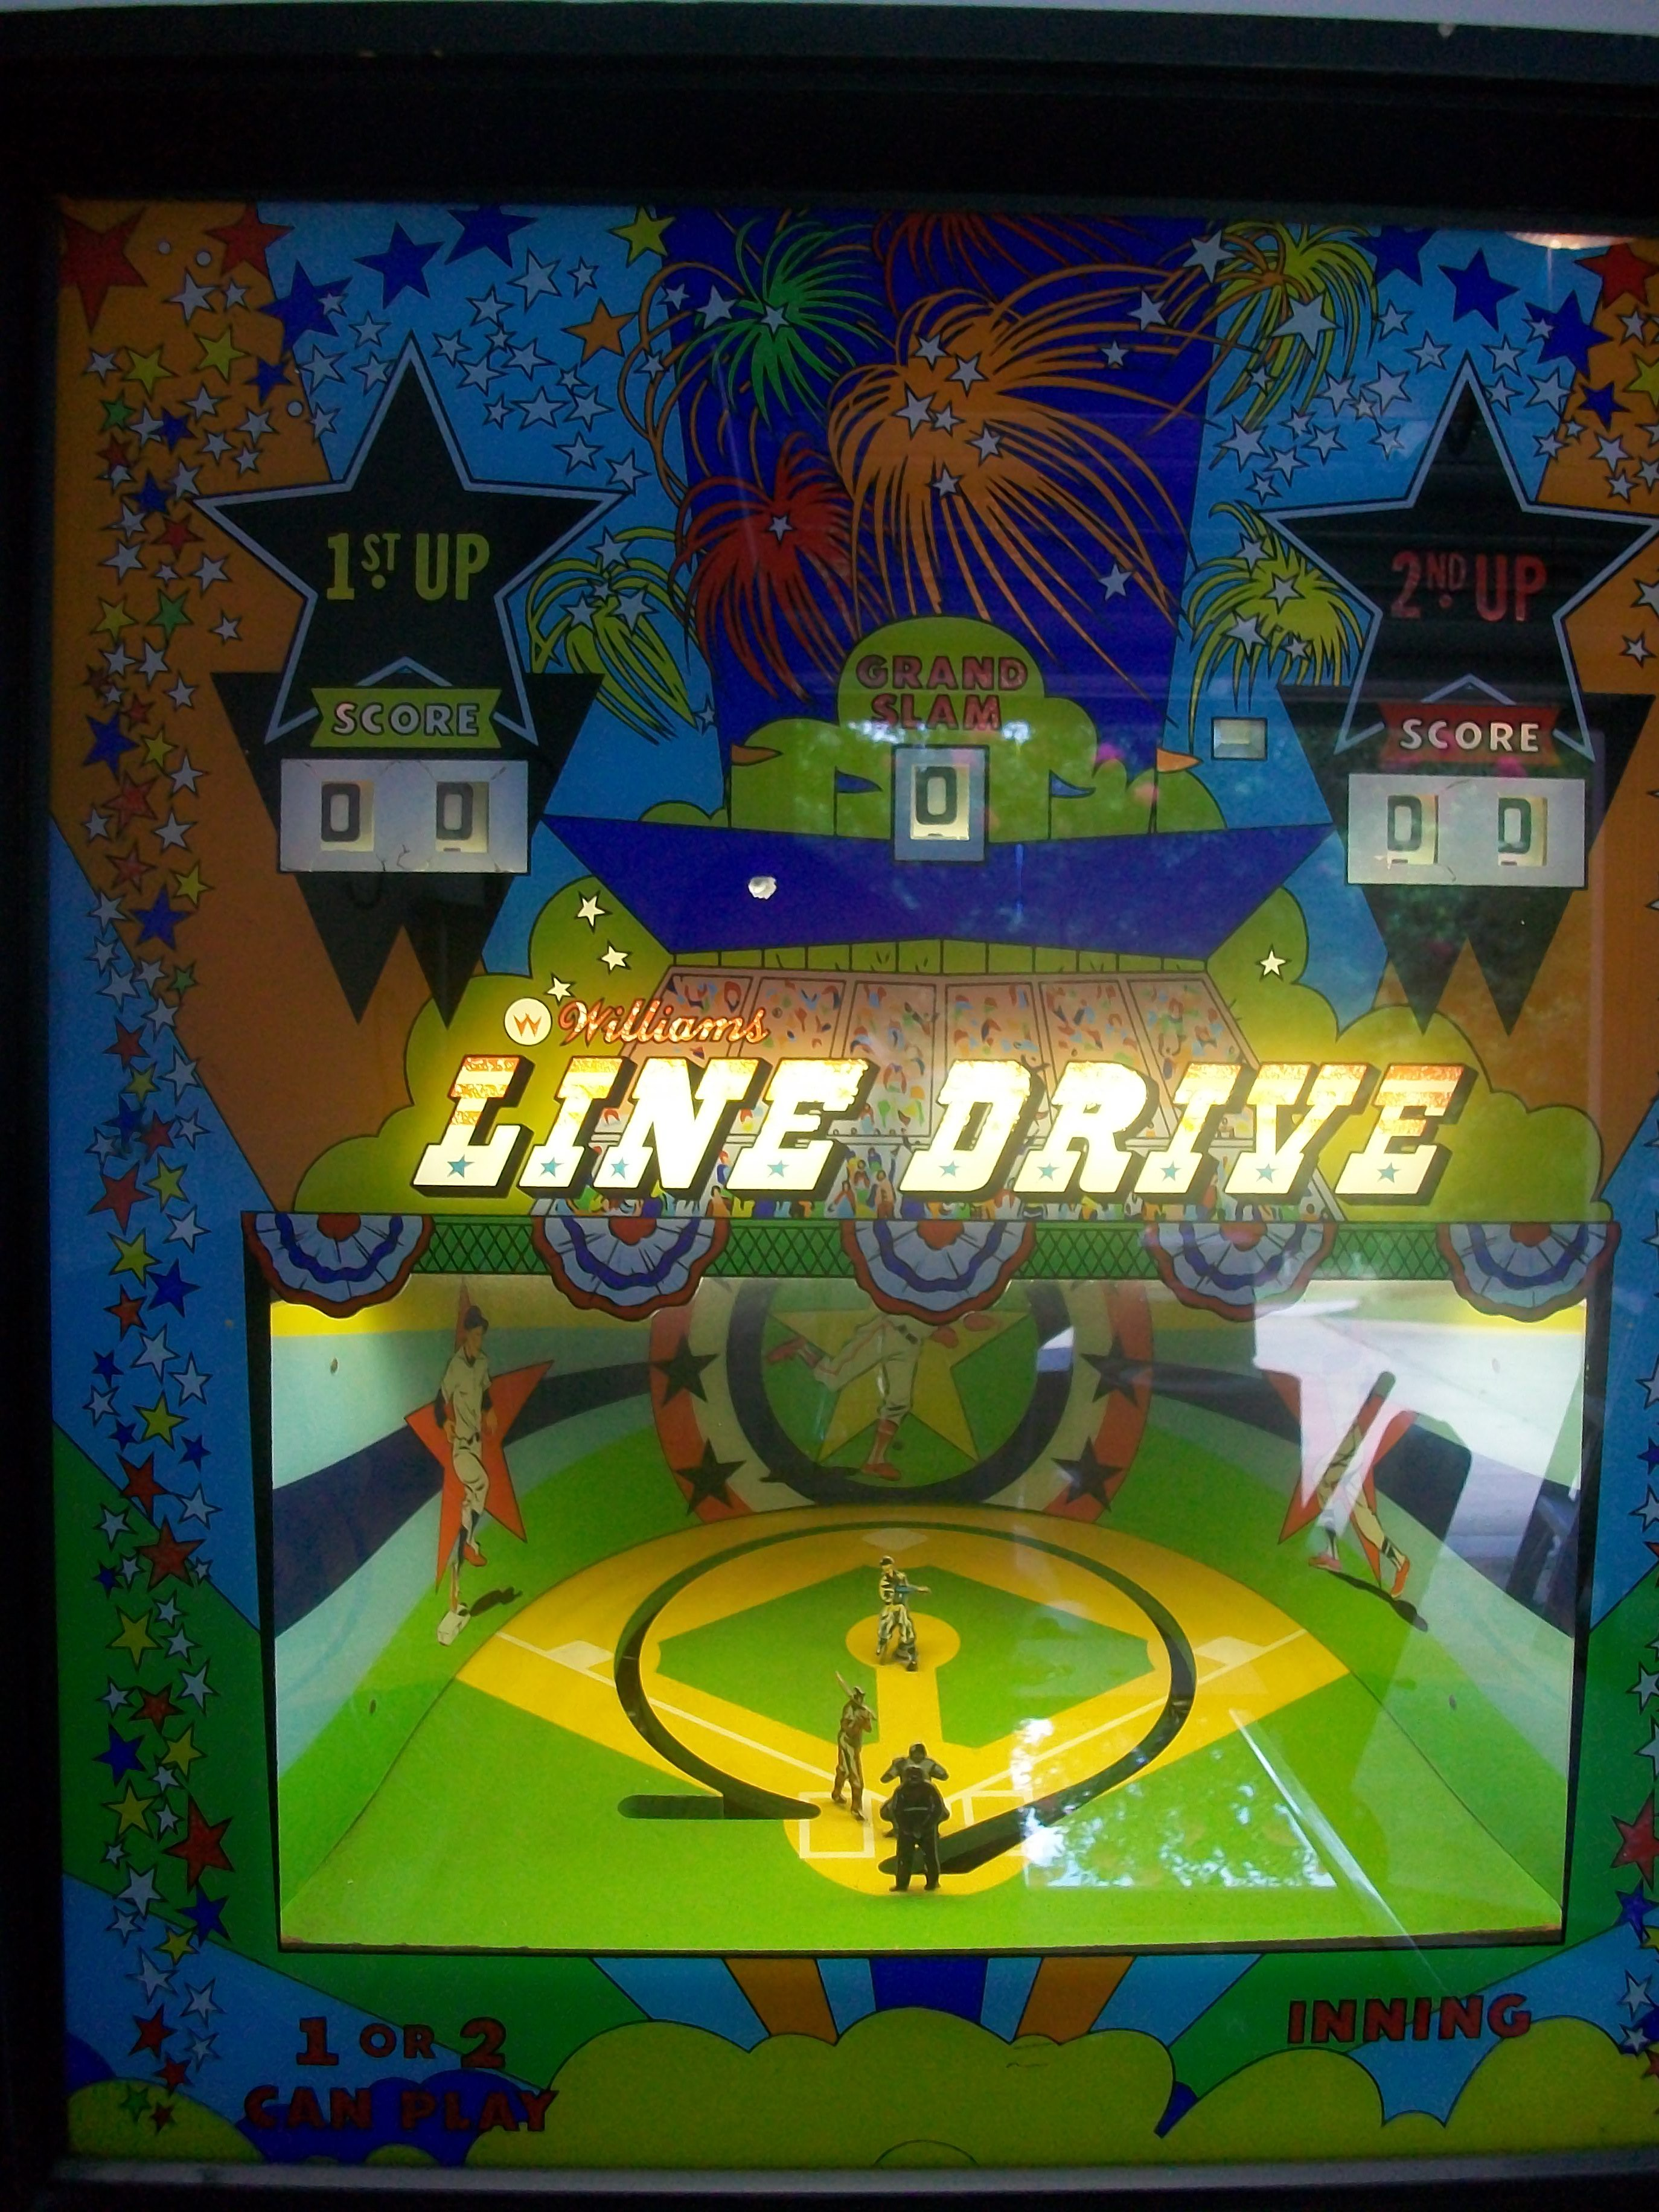 We Buy Quot Pitch And Bat Quot Pinball Machines Sell Your Coin Op